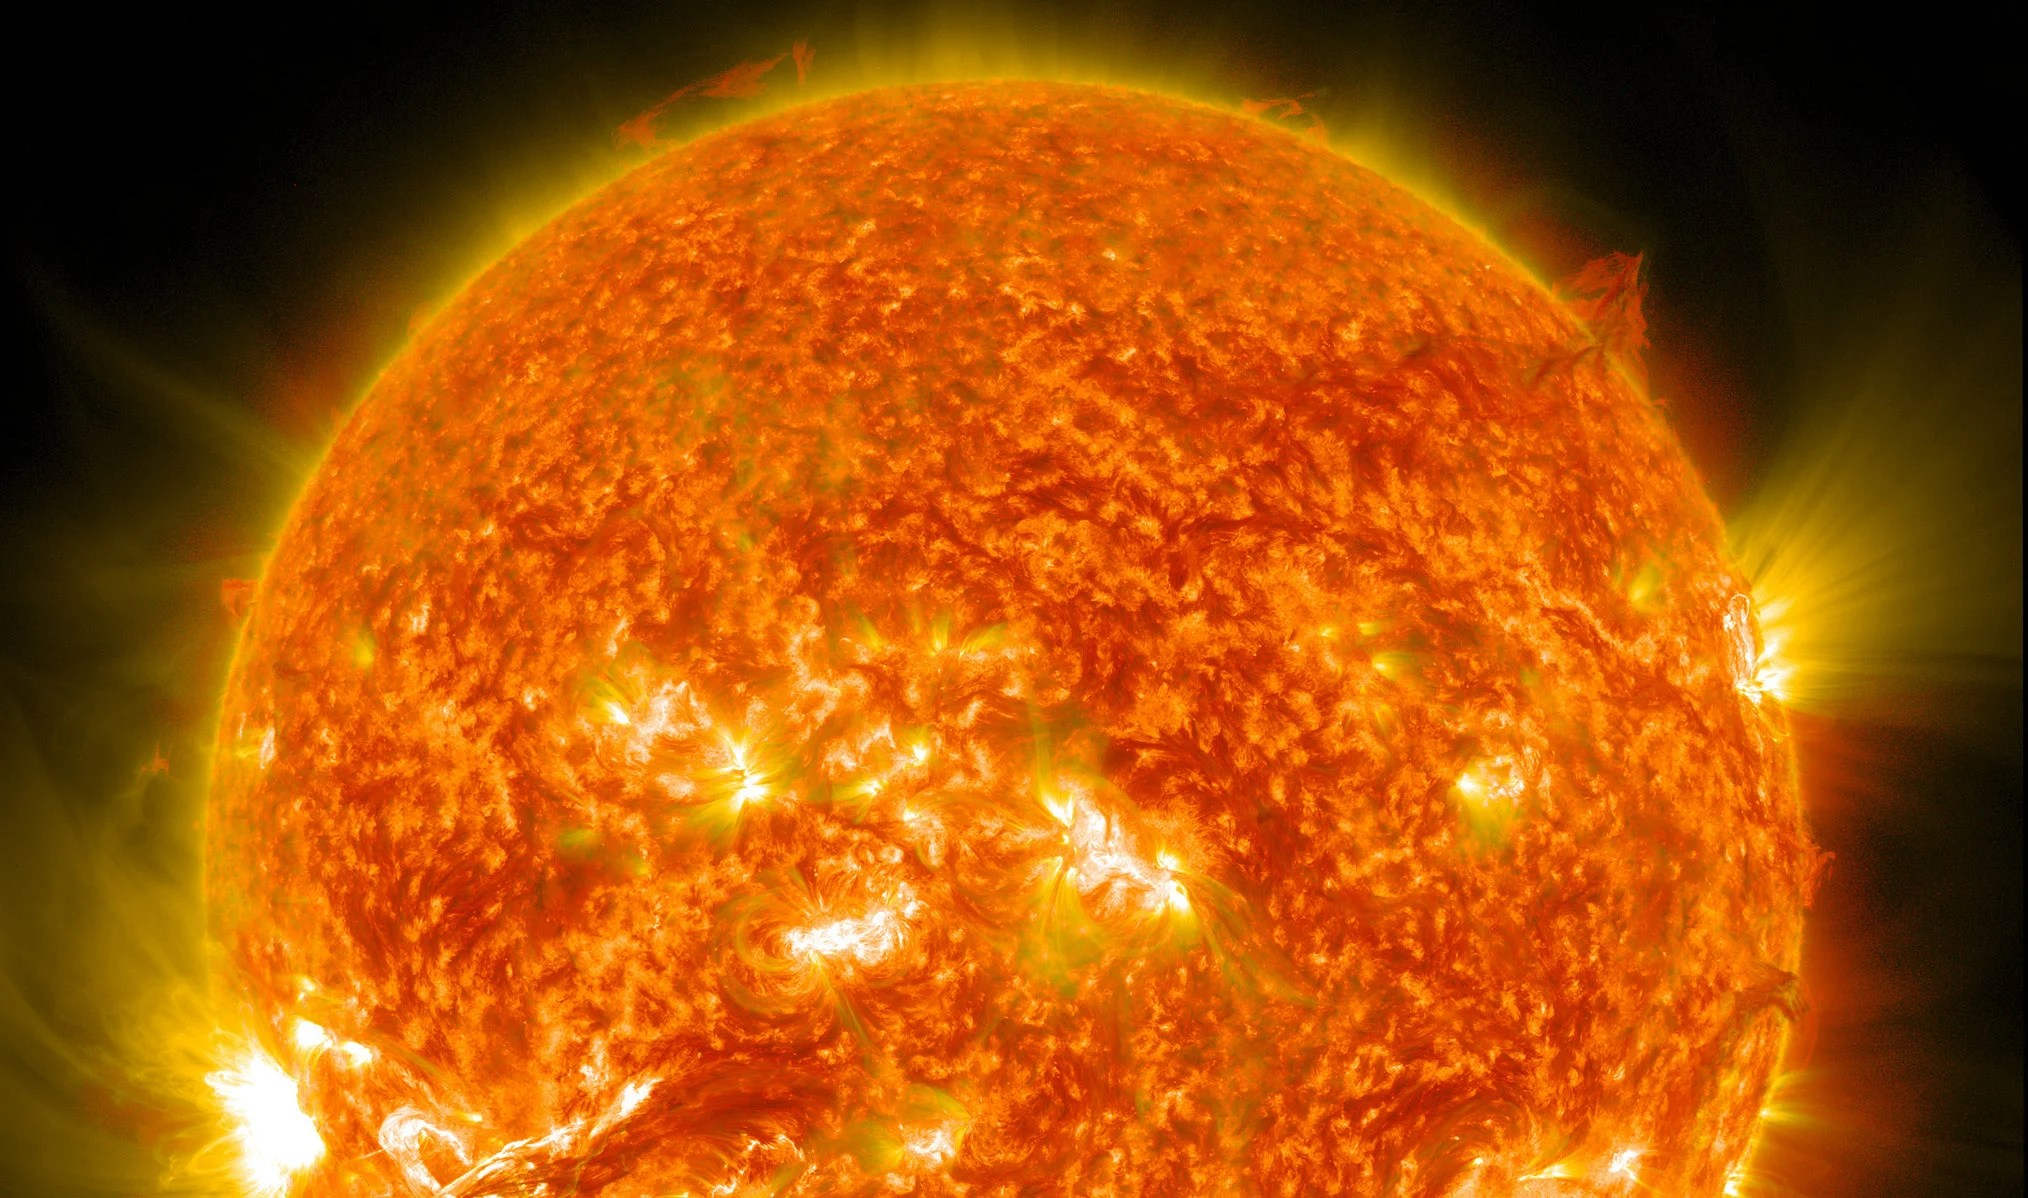 At the outermost edges of the sun's atmosphere the temperature rises to several million degrees Celsuis.